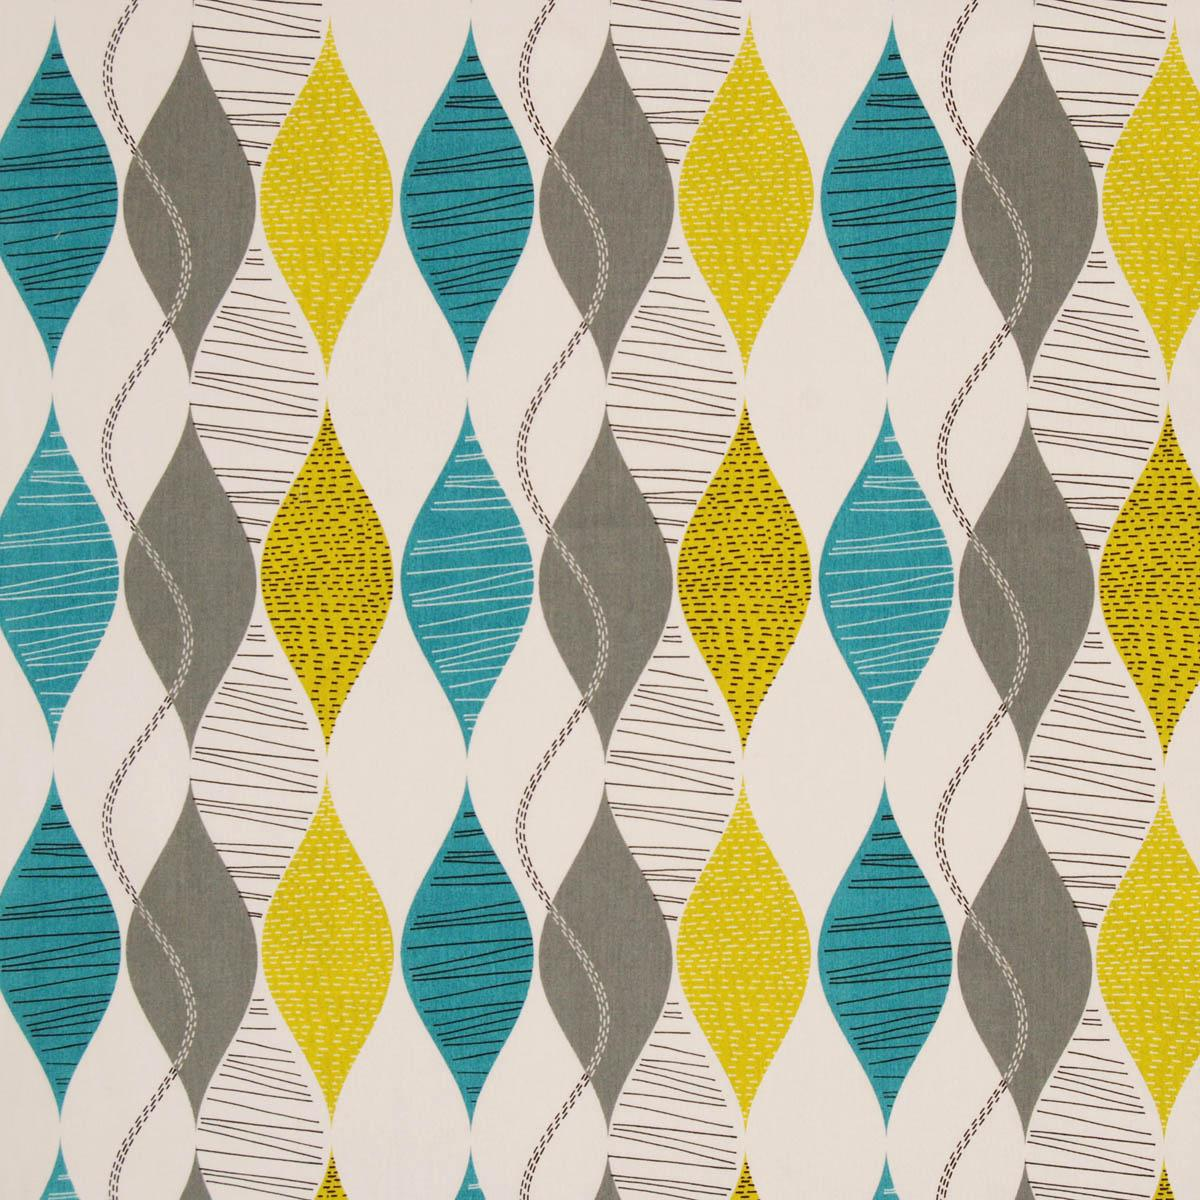 Alderley Curtain Fabric Teal | Free UK Delivery | Terrys Fabrics